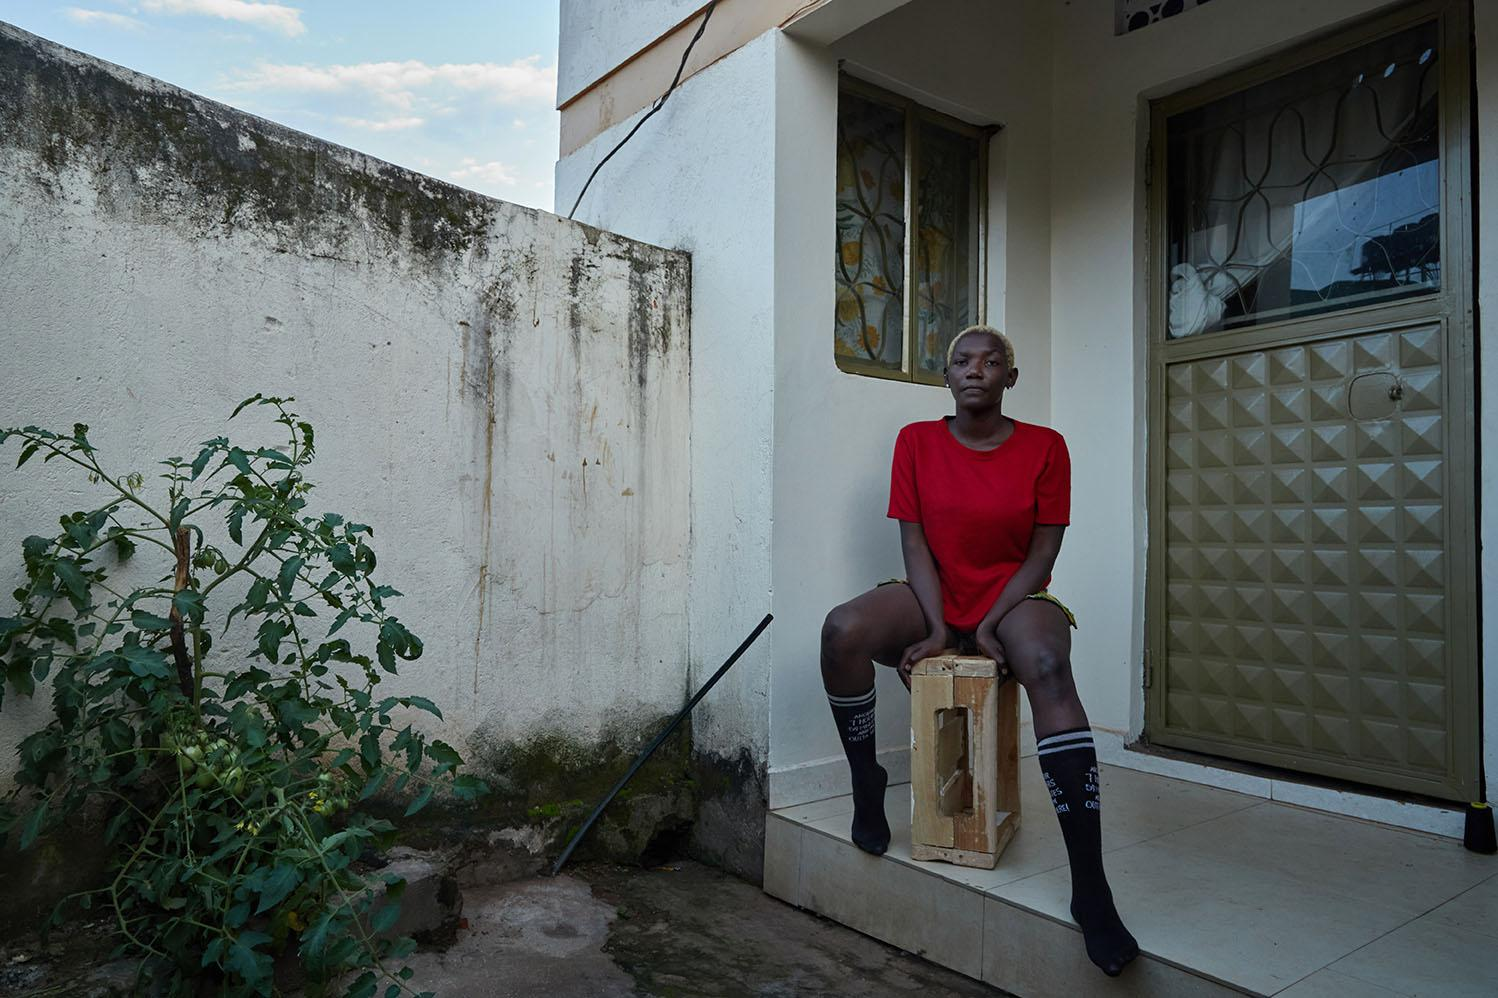 """Lillian Baraza (Bisexual), posses for a portrait outside her home in a suburb in Kampala. """"In this country and probably many others, you can't be kissing or holding hands of your partner if you are same-sex, they would burn you alive (laughs off). I really want to see better leadership where everyone is equal, and rights affect everyone the same way. Most importantly, the government needs to put in place medical services for the LGBTQ people, especially the gays and transgender because there is a lot of discrimination in health centers. Because I'm Bi, it is easy to get away with it, but I sympathize with the trans and gay people"""""""